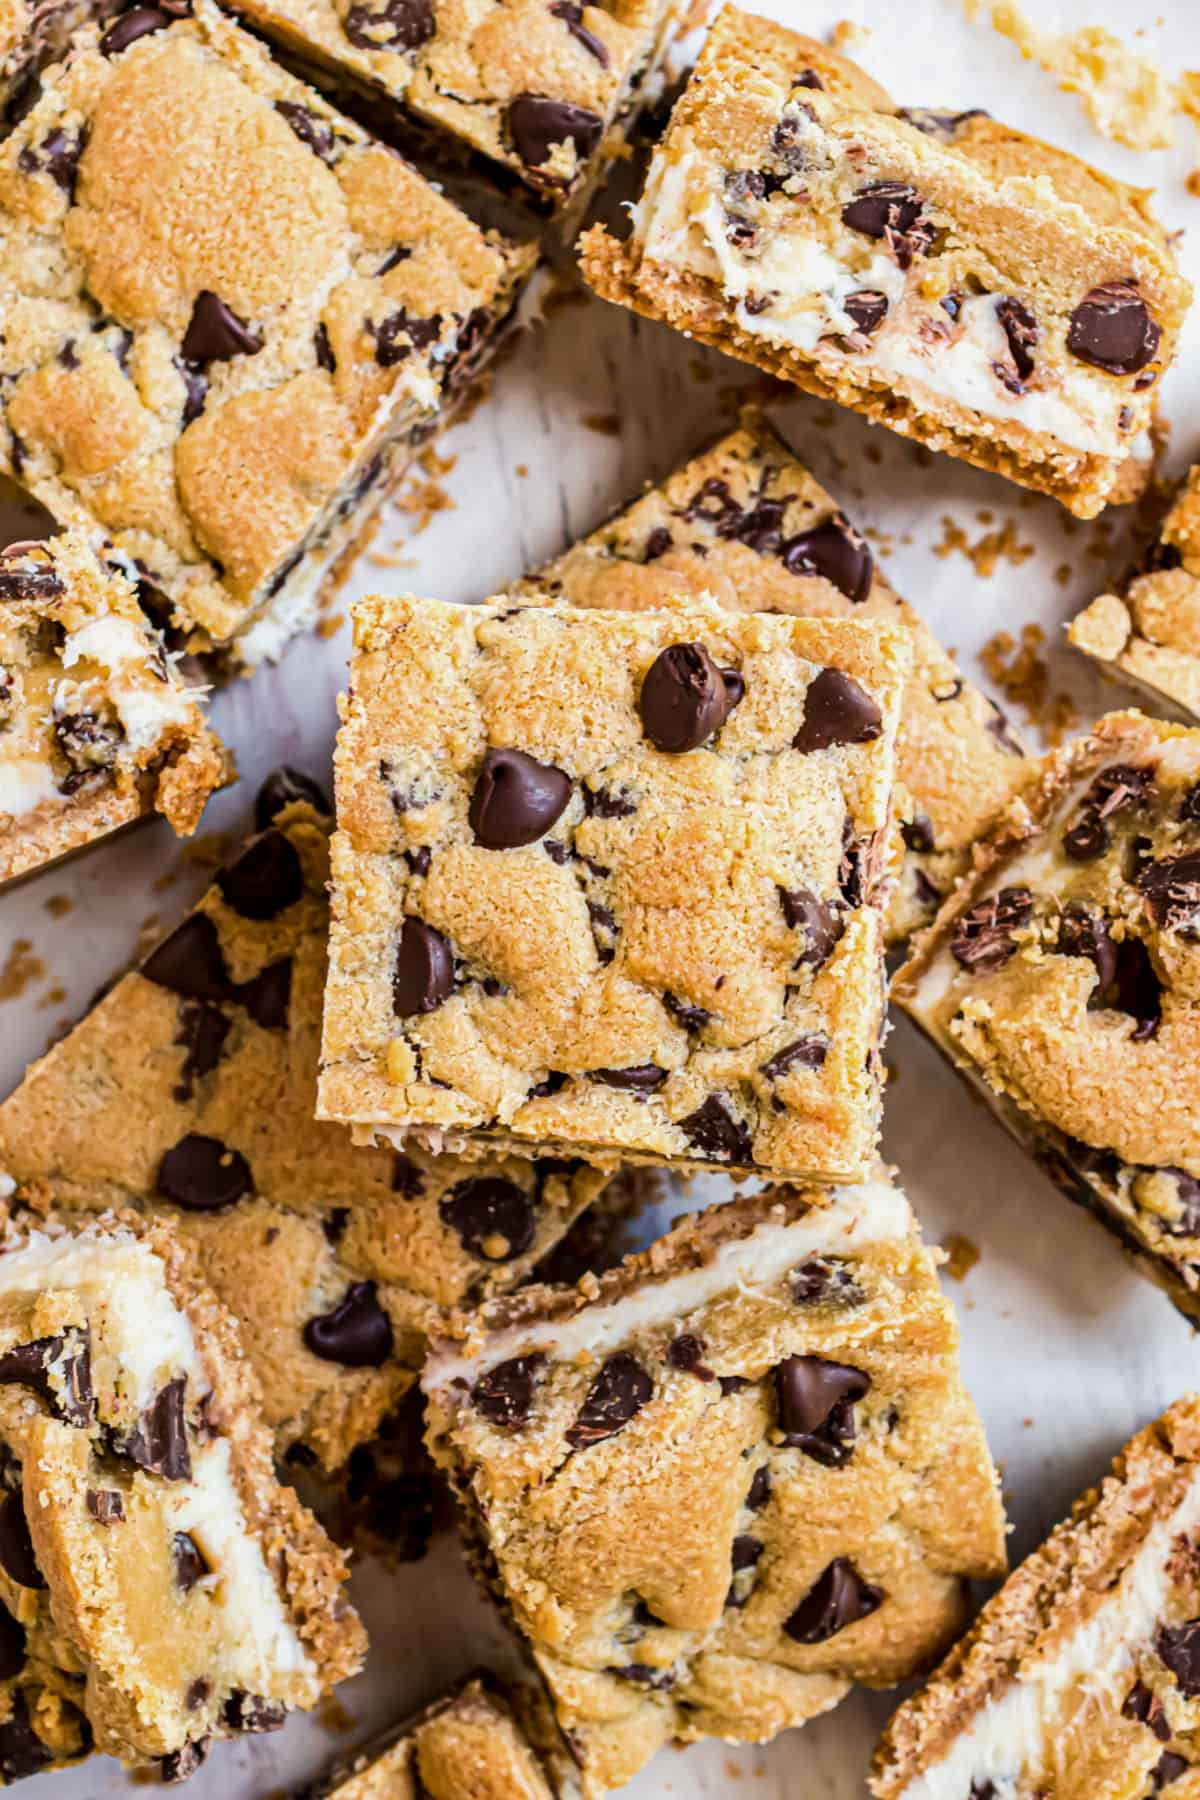 Chocolate chip cheesecake cookie bars arranged on parchment paper.